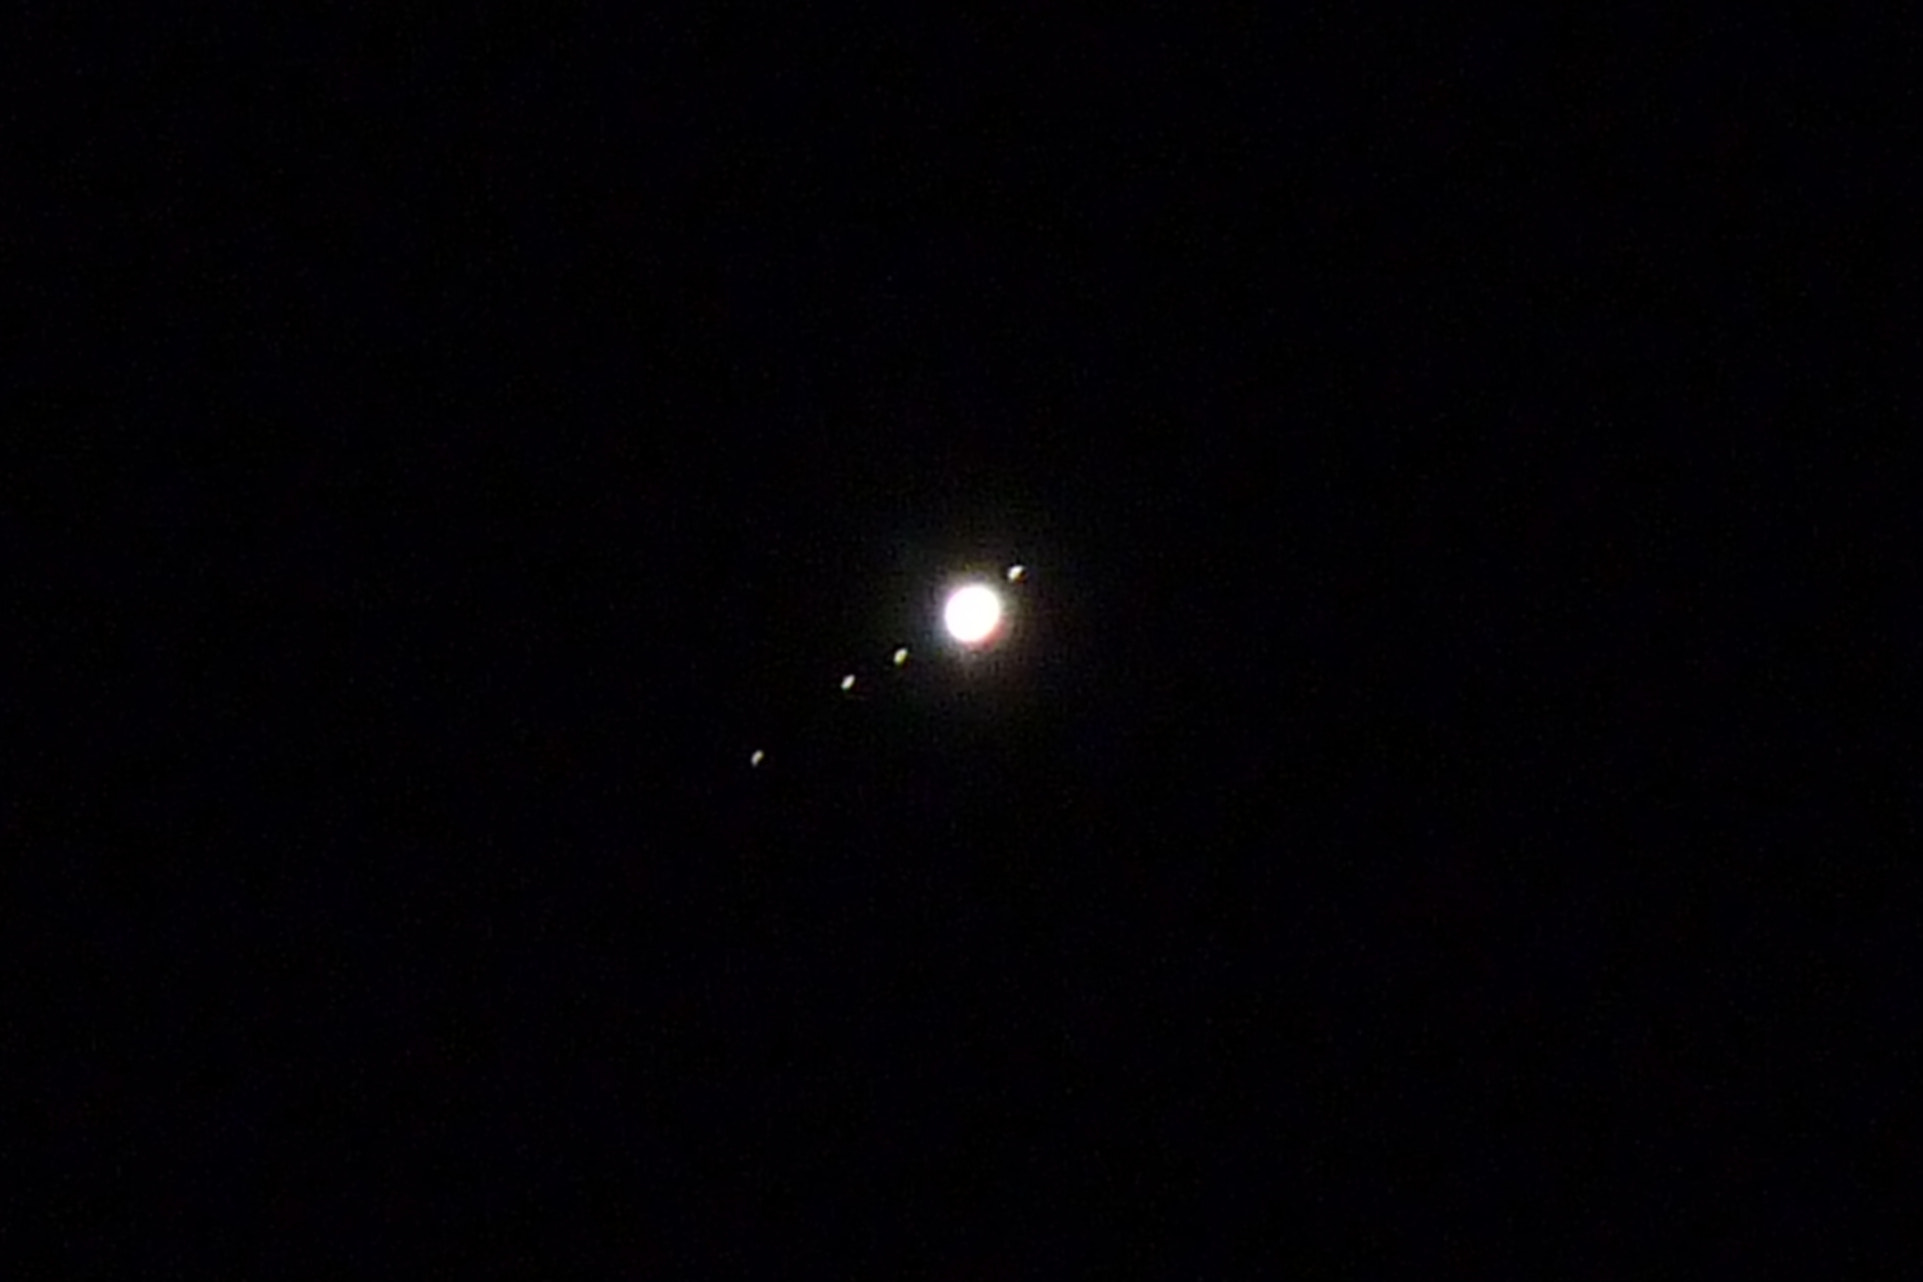 Photograph Jupiter & the 4 Galilean moons by Rebaz Khoshnaw on 500px